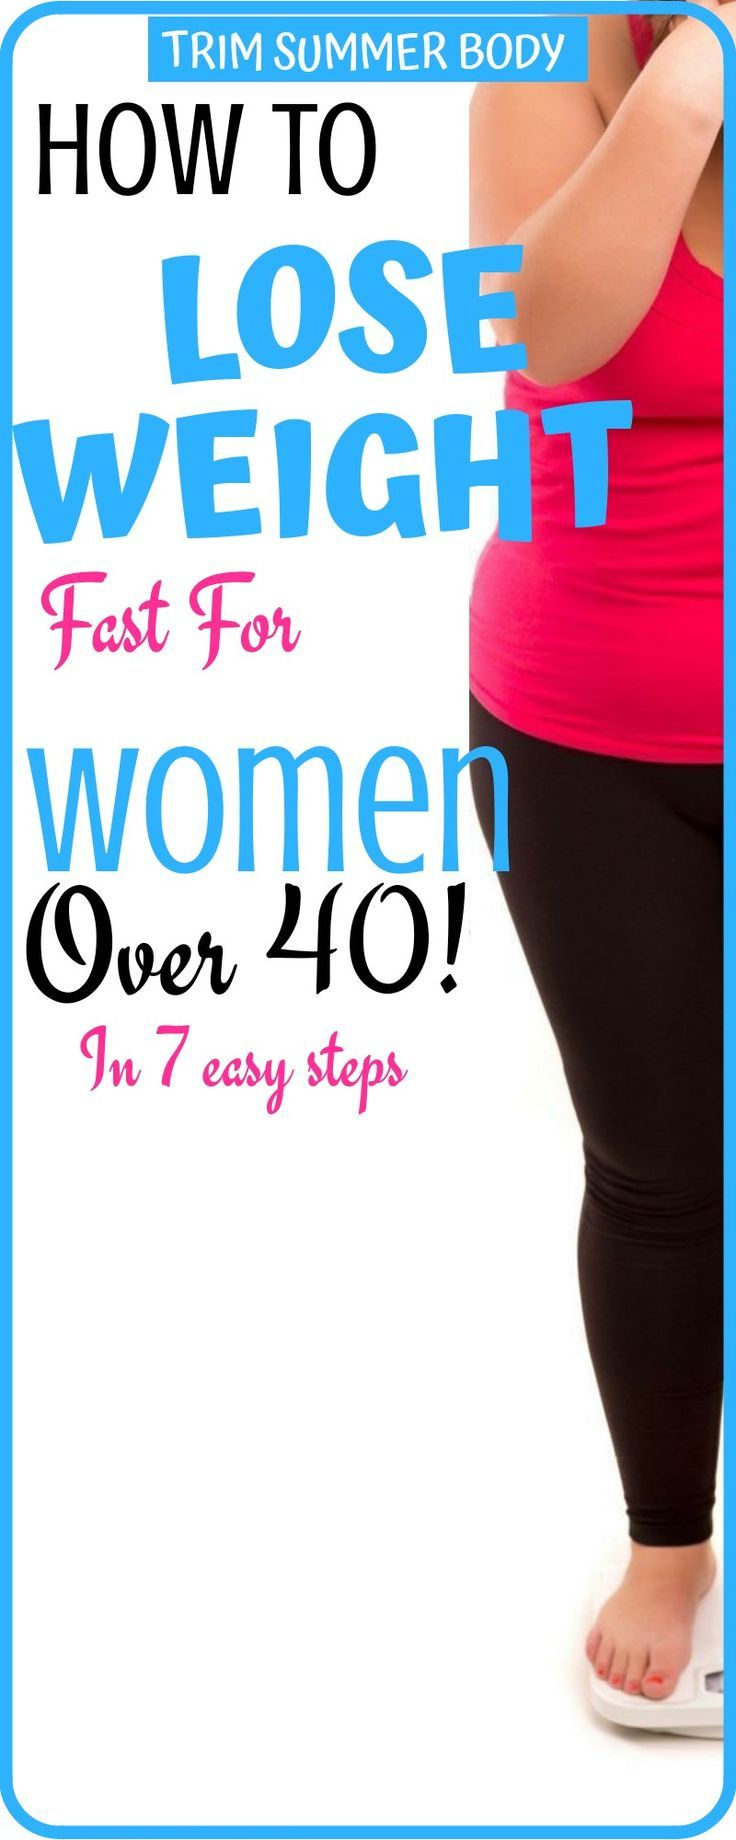 40 Tips for Quick Weight Loss